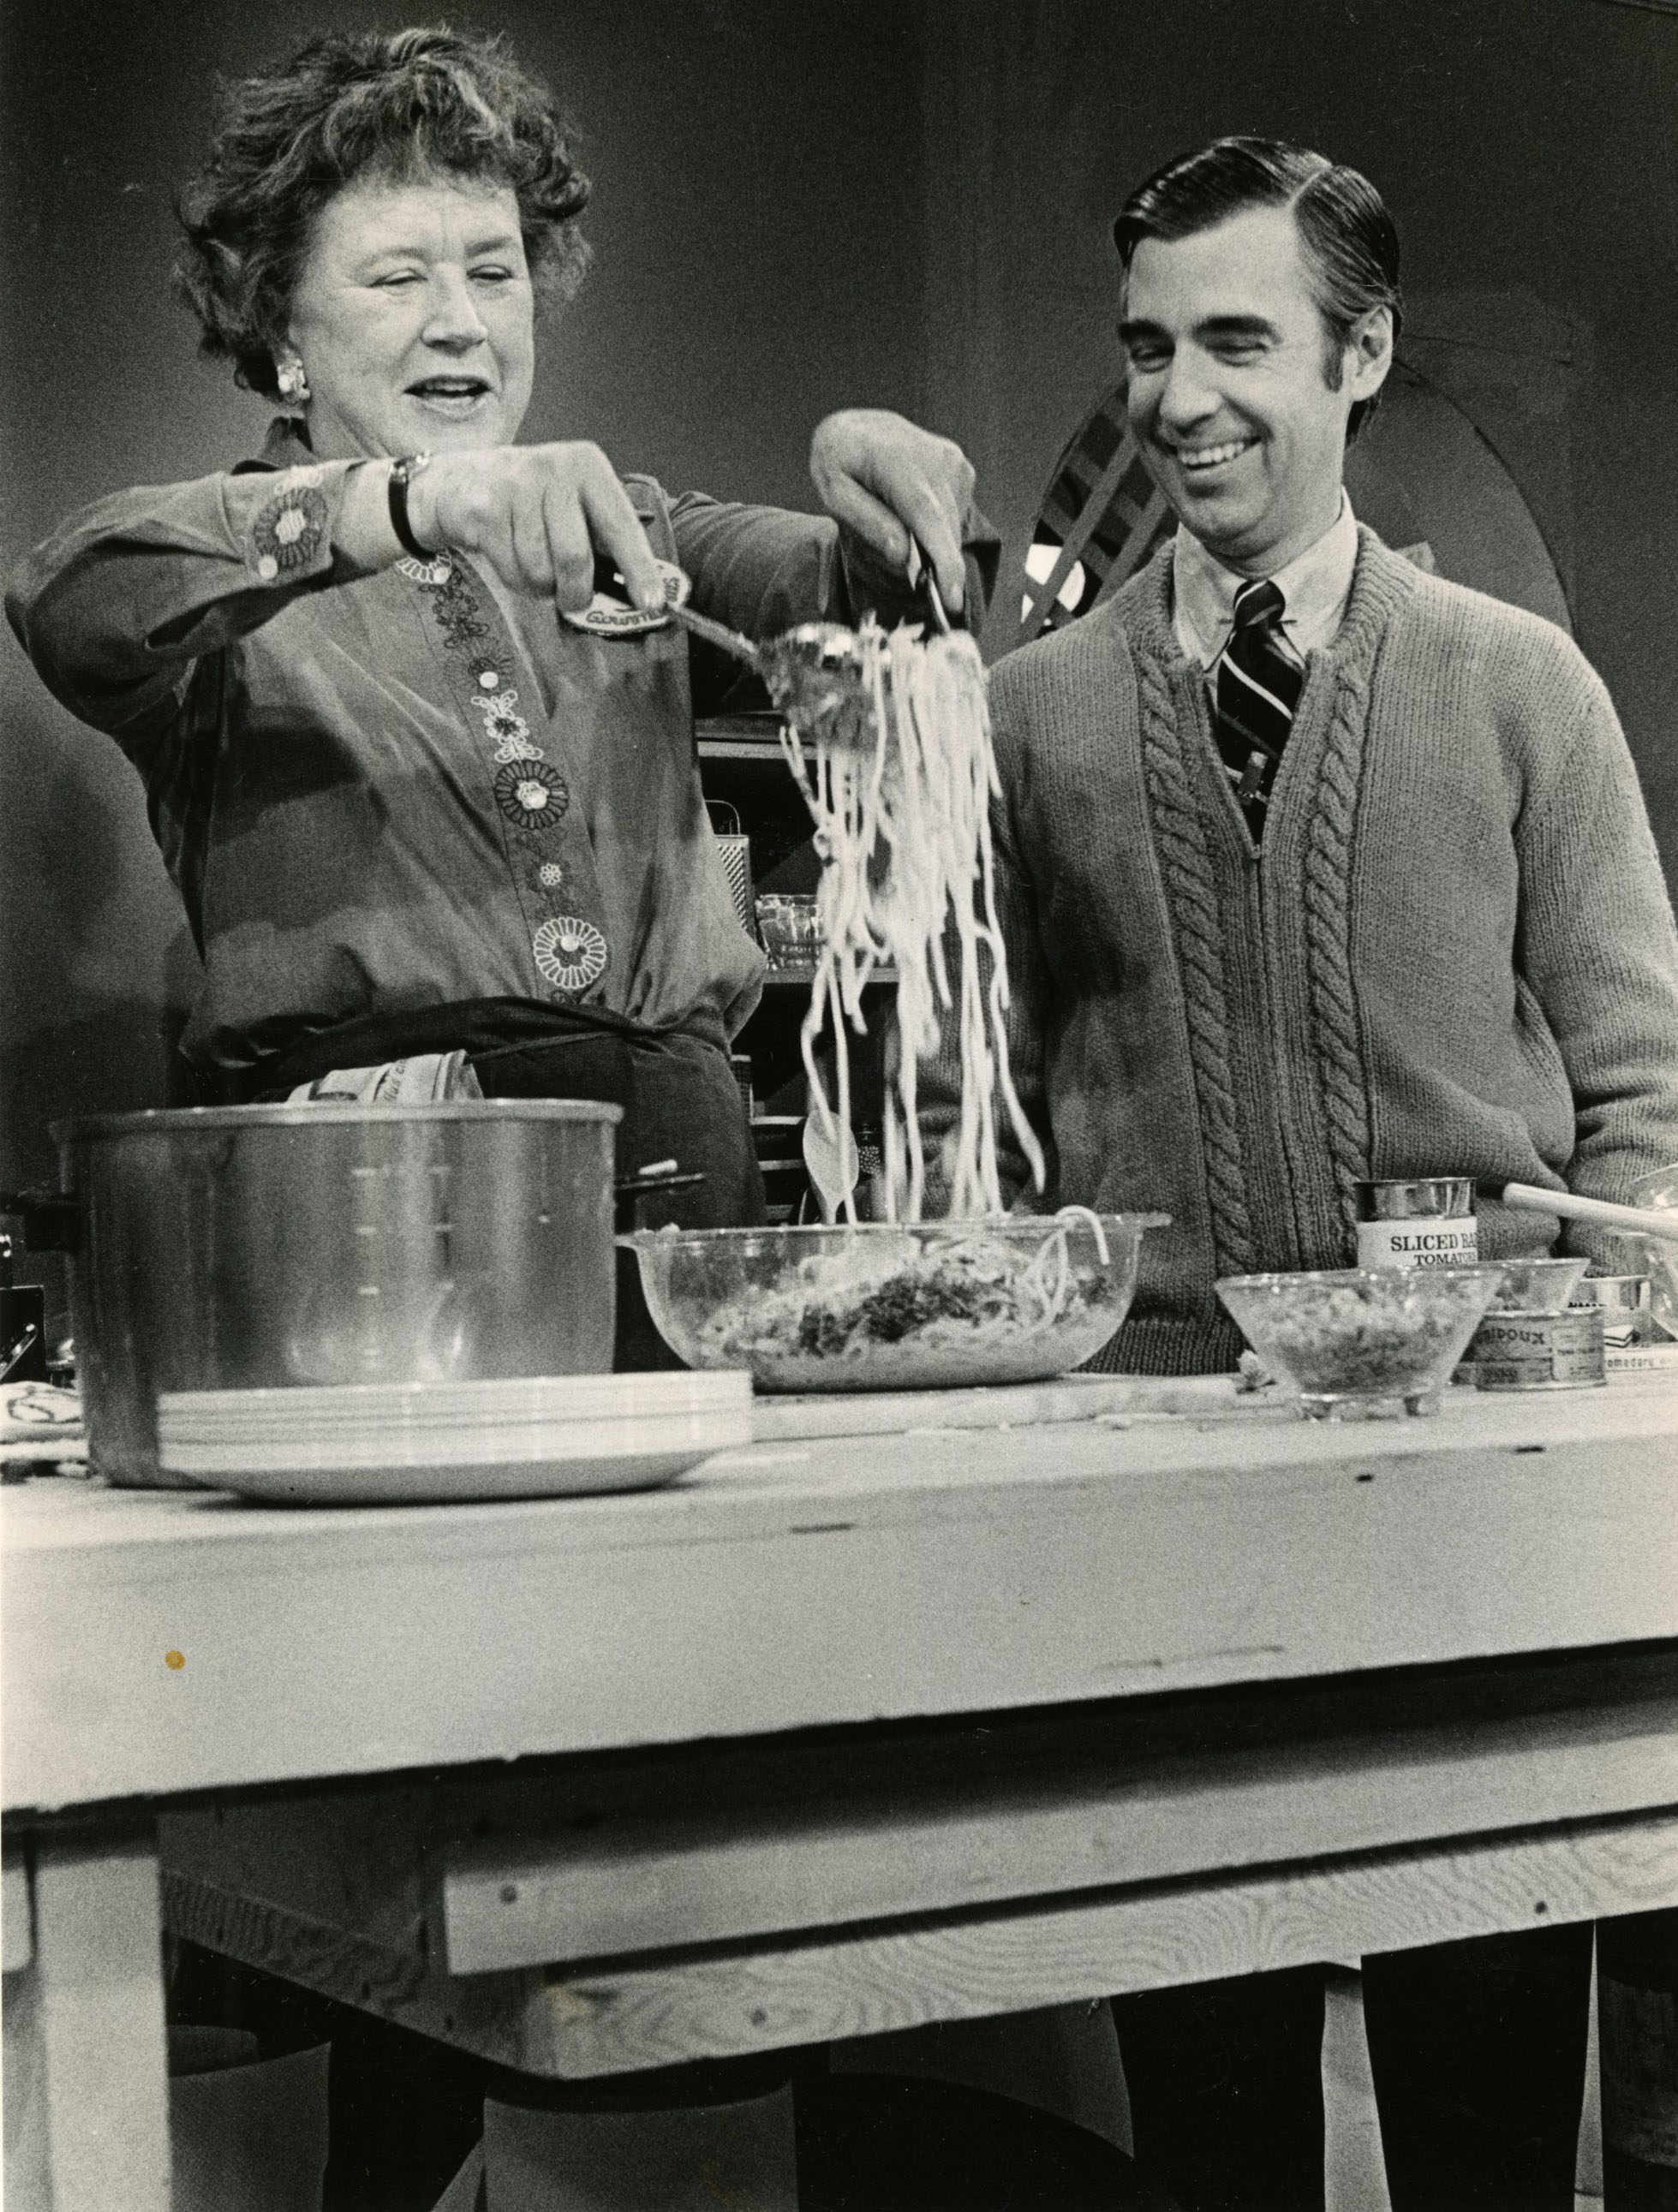 Fred Rogers in 1980 with Julia Child, whose French cooking program aired on PBS and attracted a wide audience. (Post-Gazette Archives)